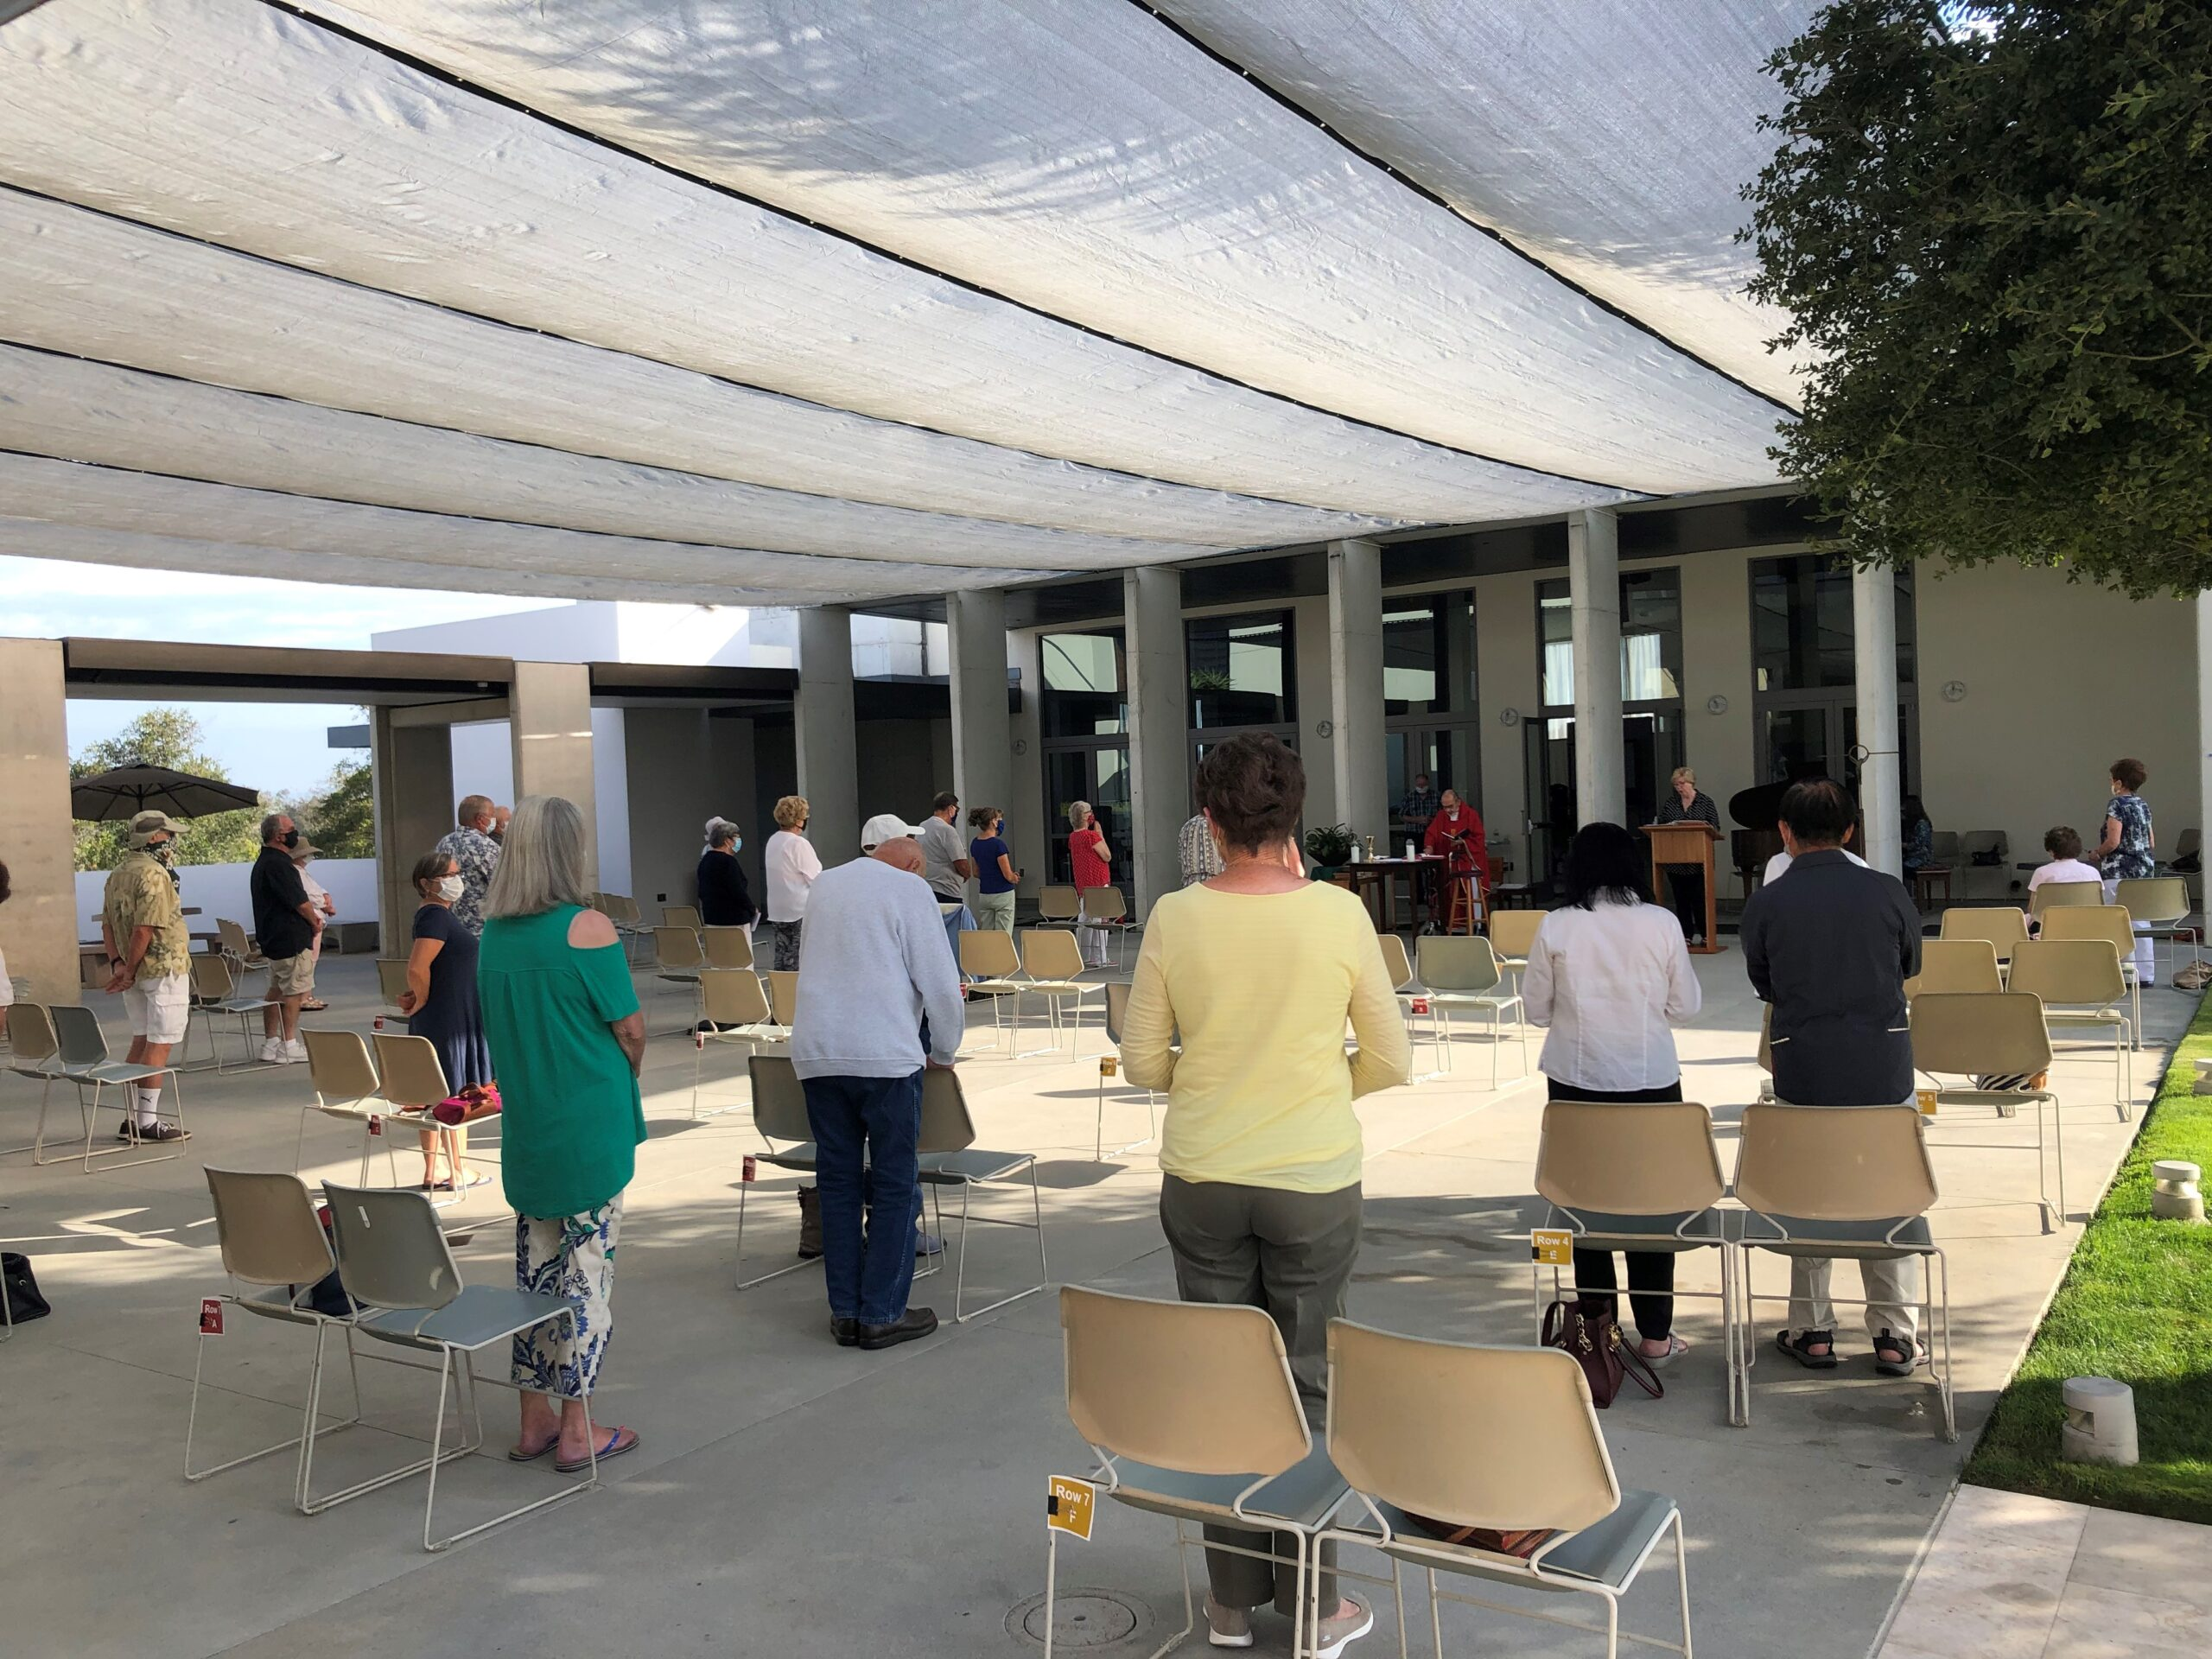 Daily Mass on the Plaza at 9:30am and Livestream